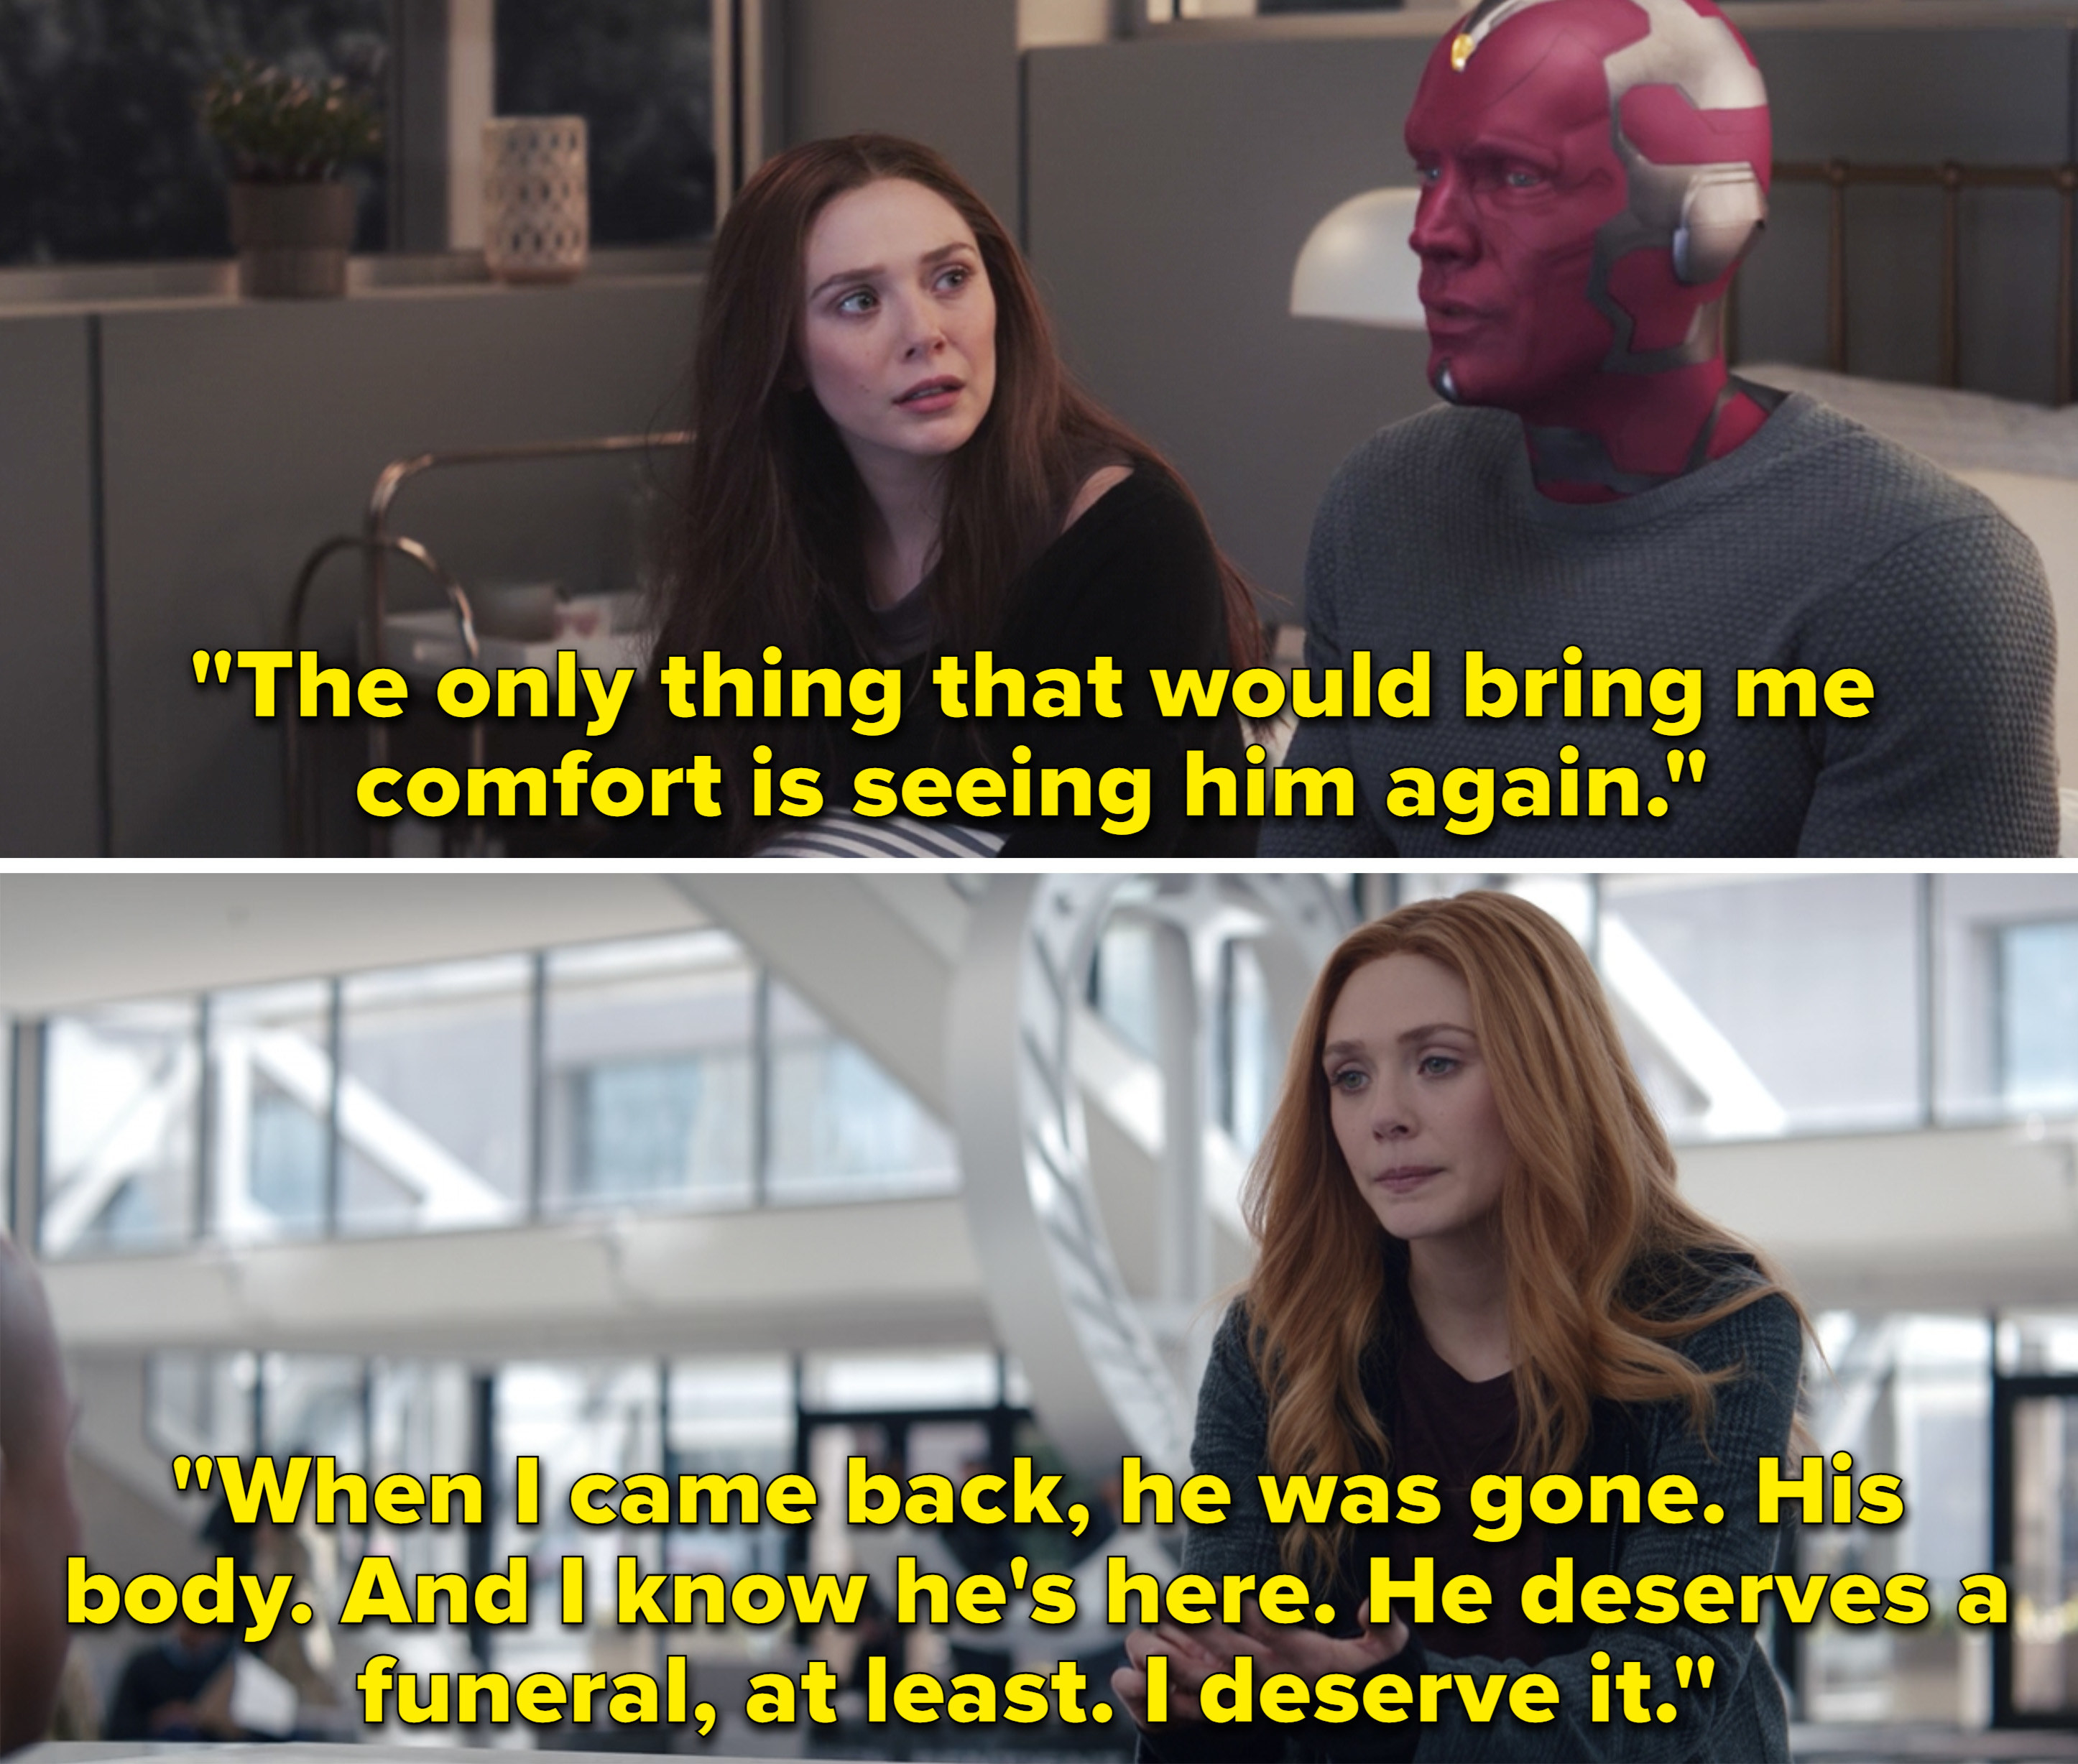 """Wanda telling Vision, """"The only thing that would bring me comfort is seeing him again"""" and then Wanda at S.W.O.R.D. saying she just wants to bury Vision's body"""